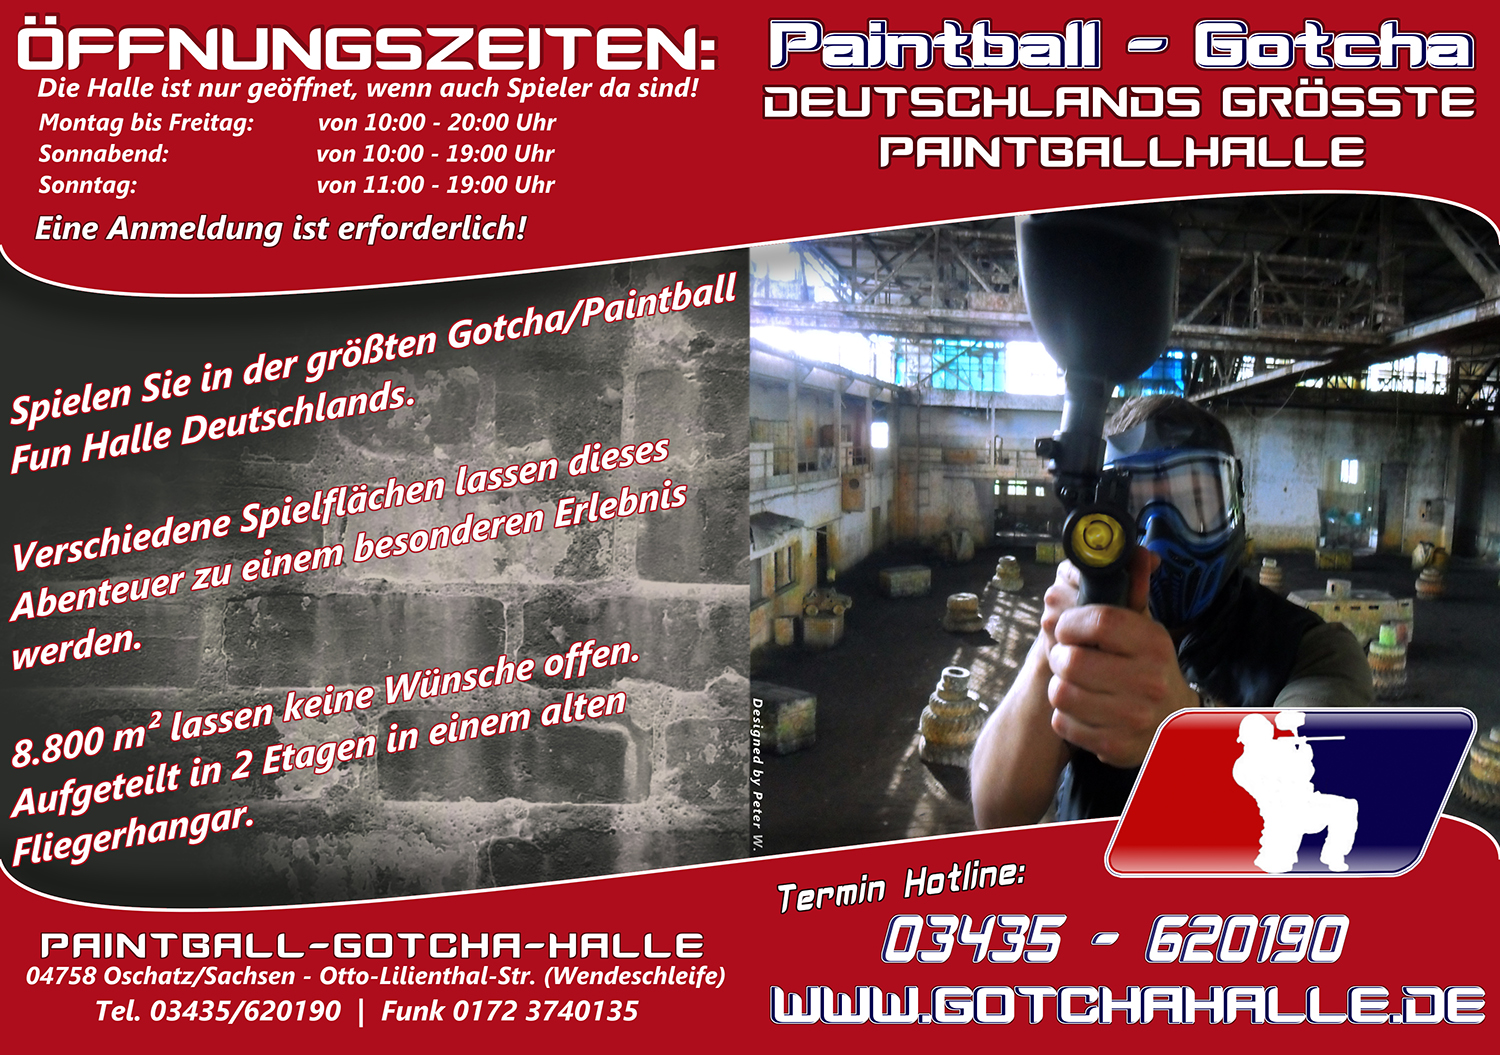 Flyer der Paintballhalle Oschatz